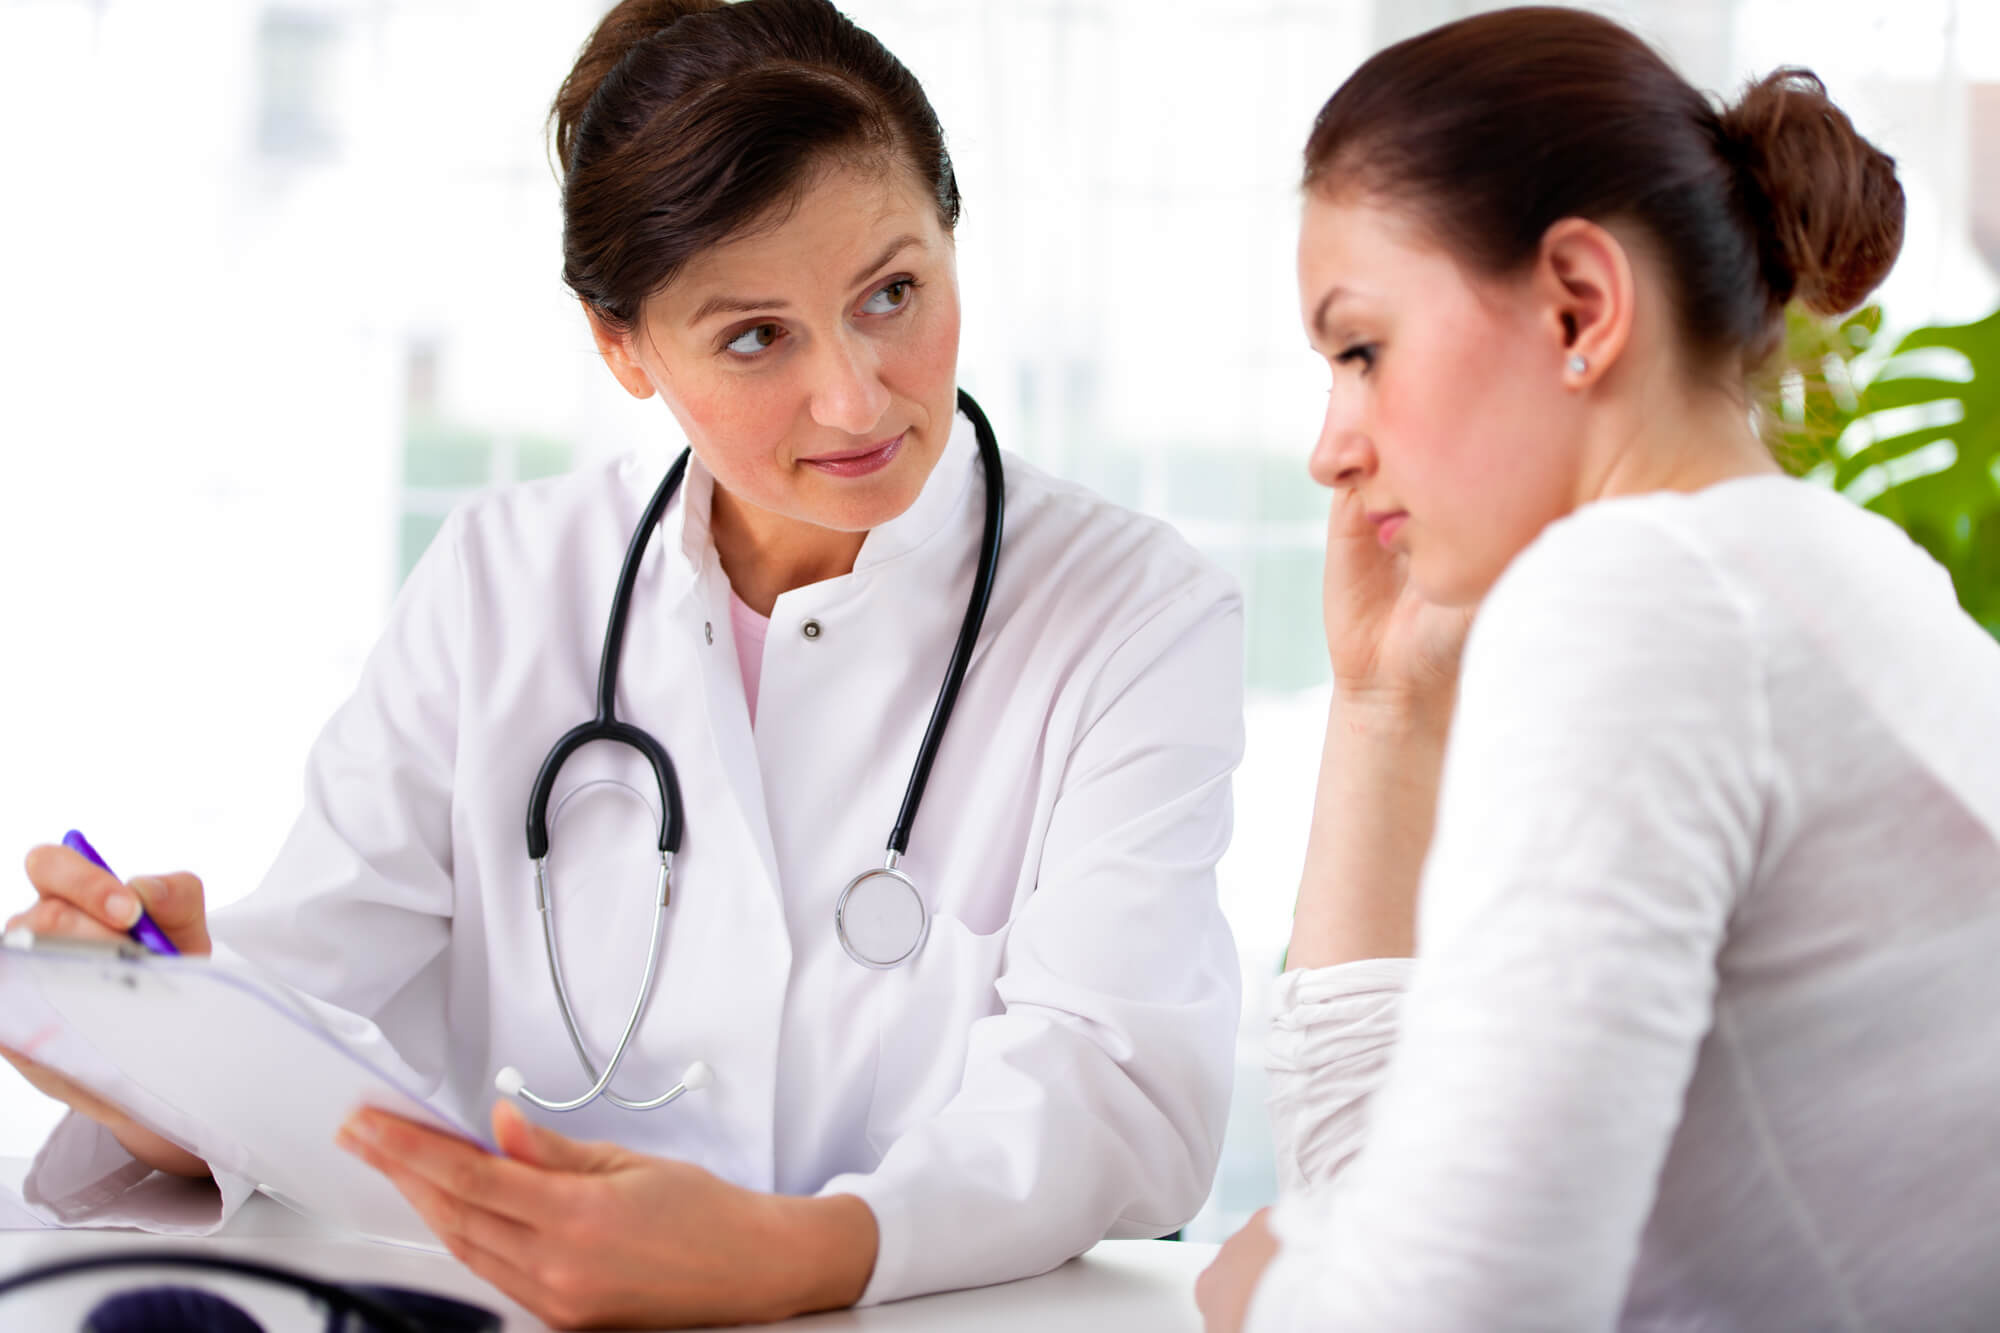 A female doctor with a stethoscope around her neck explains the benefits of DHEA to her female patient.